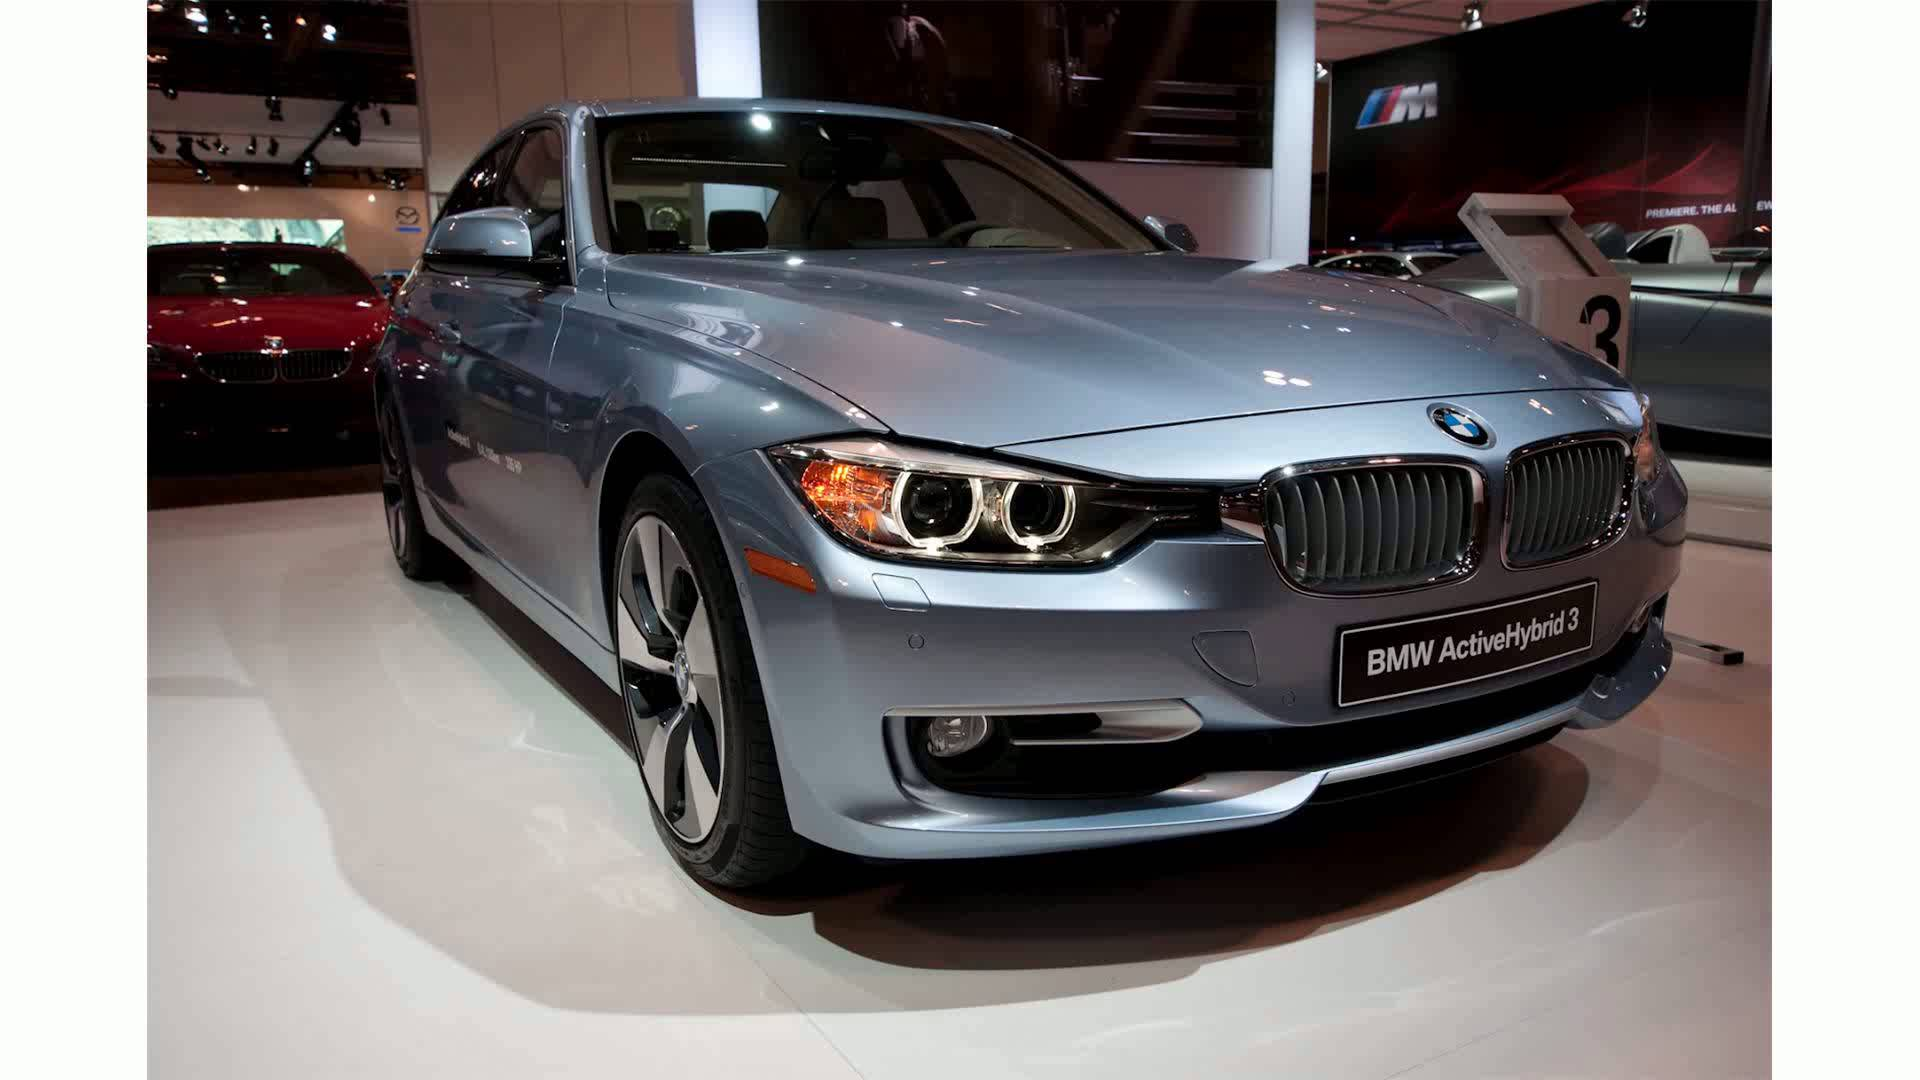 2015 Bmw Activehybrid 5 #2